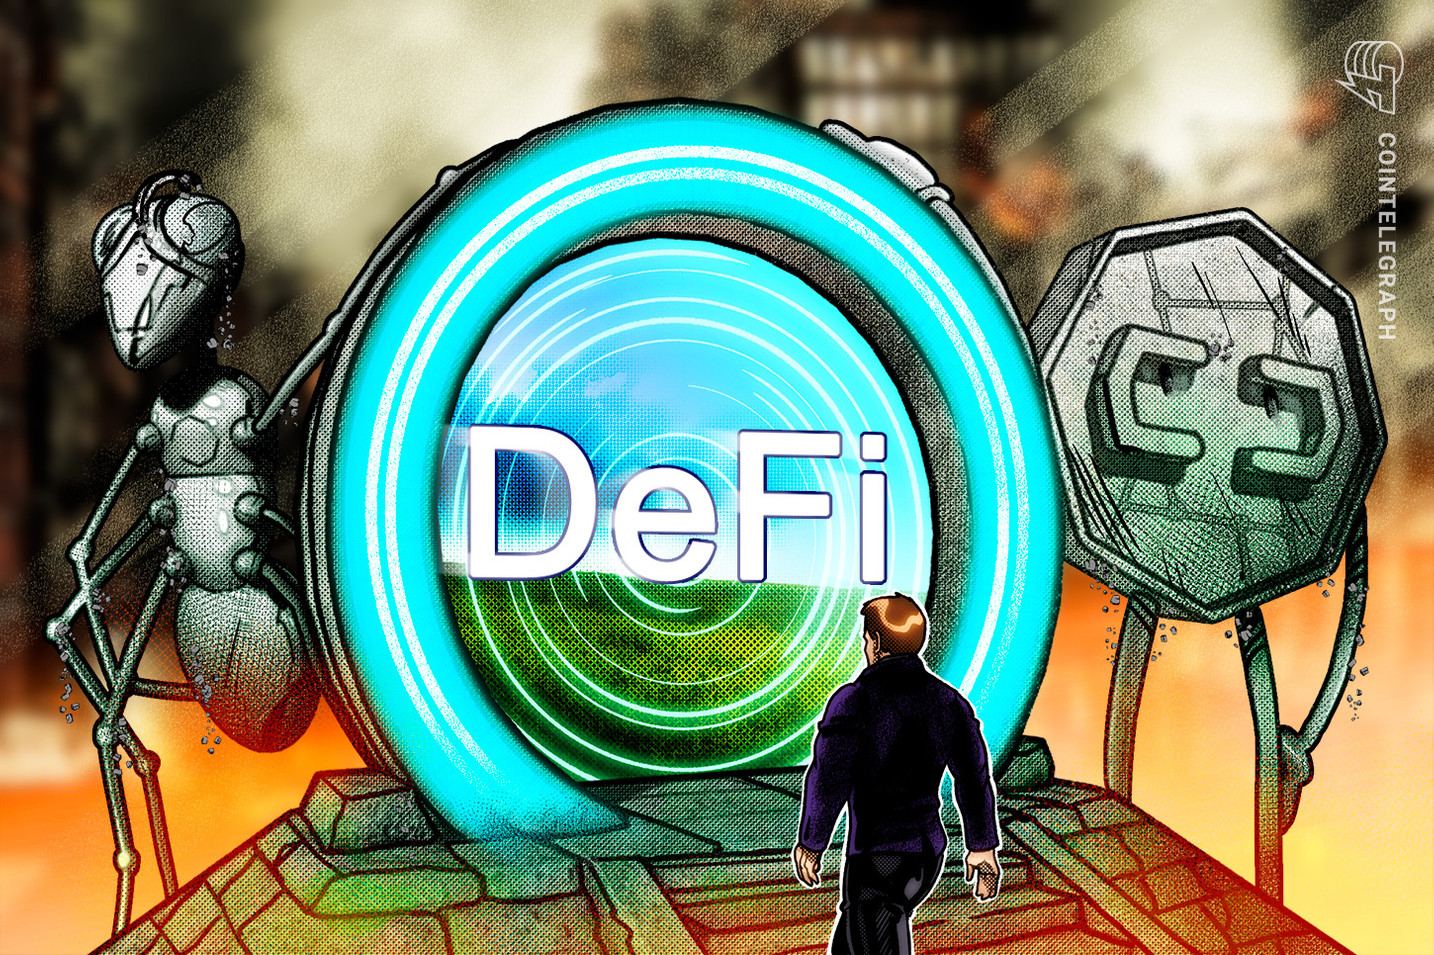 Pantera says they're placing a heavier bet on DeFi than the rest of the market